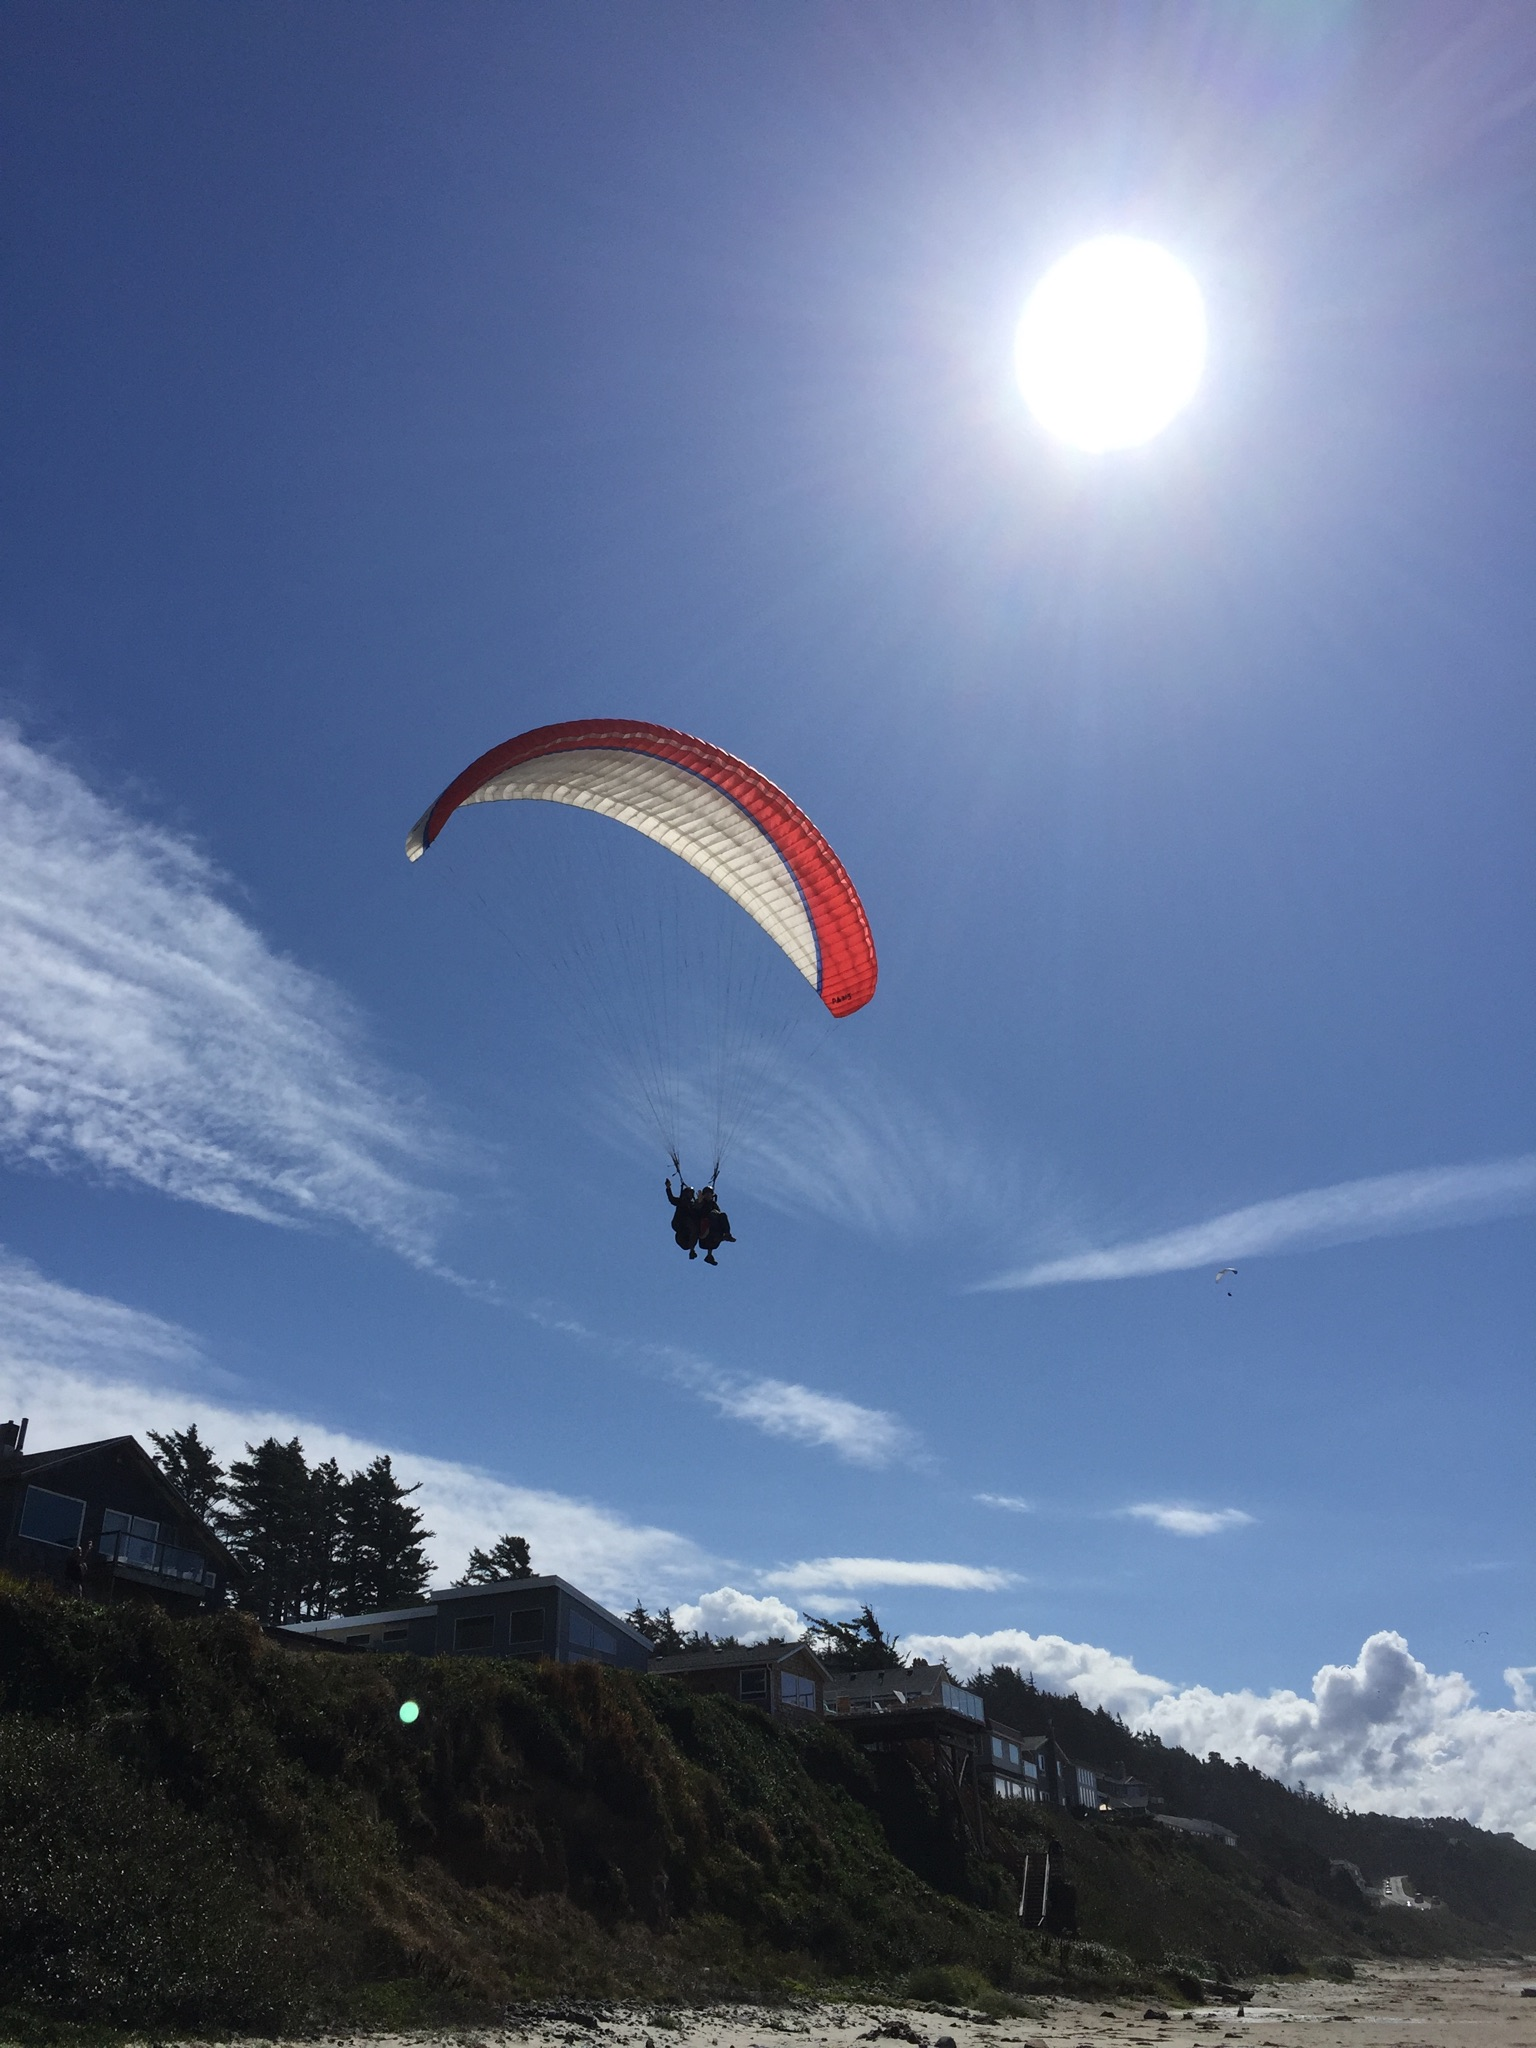 Coming in for a landing on the beach